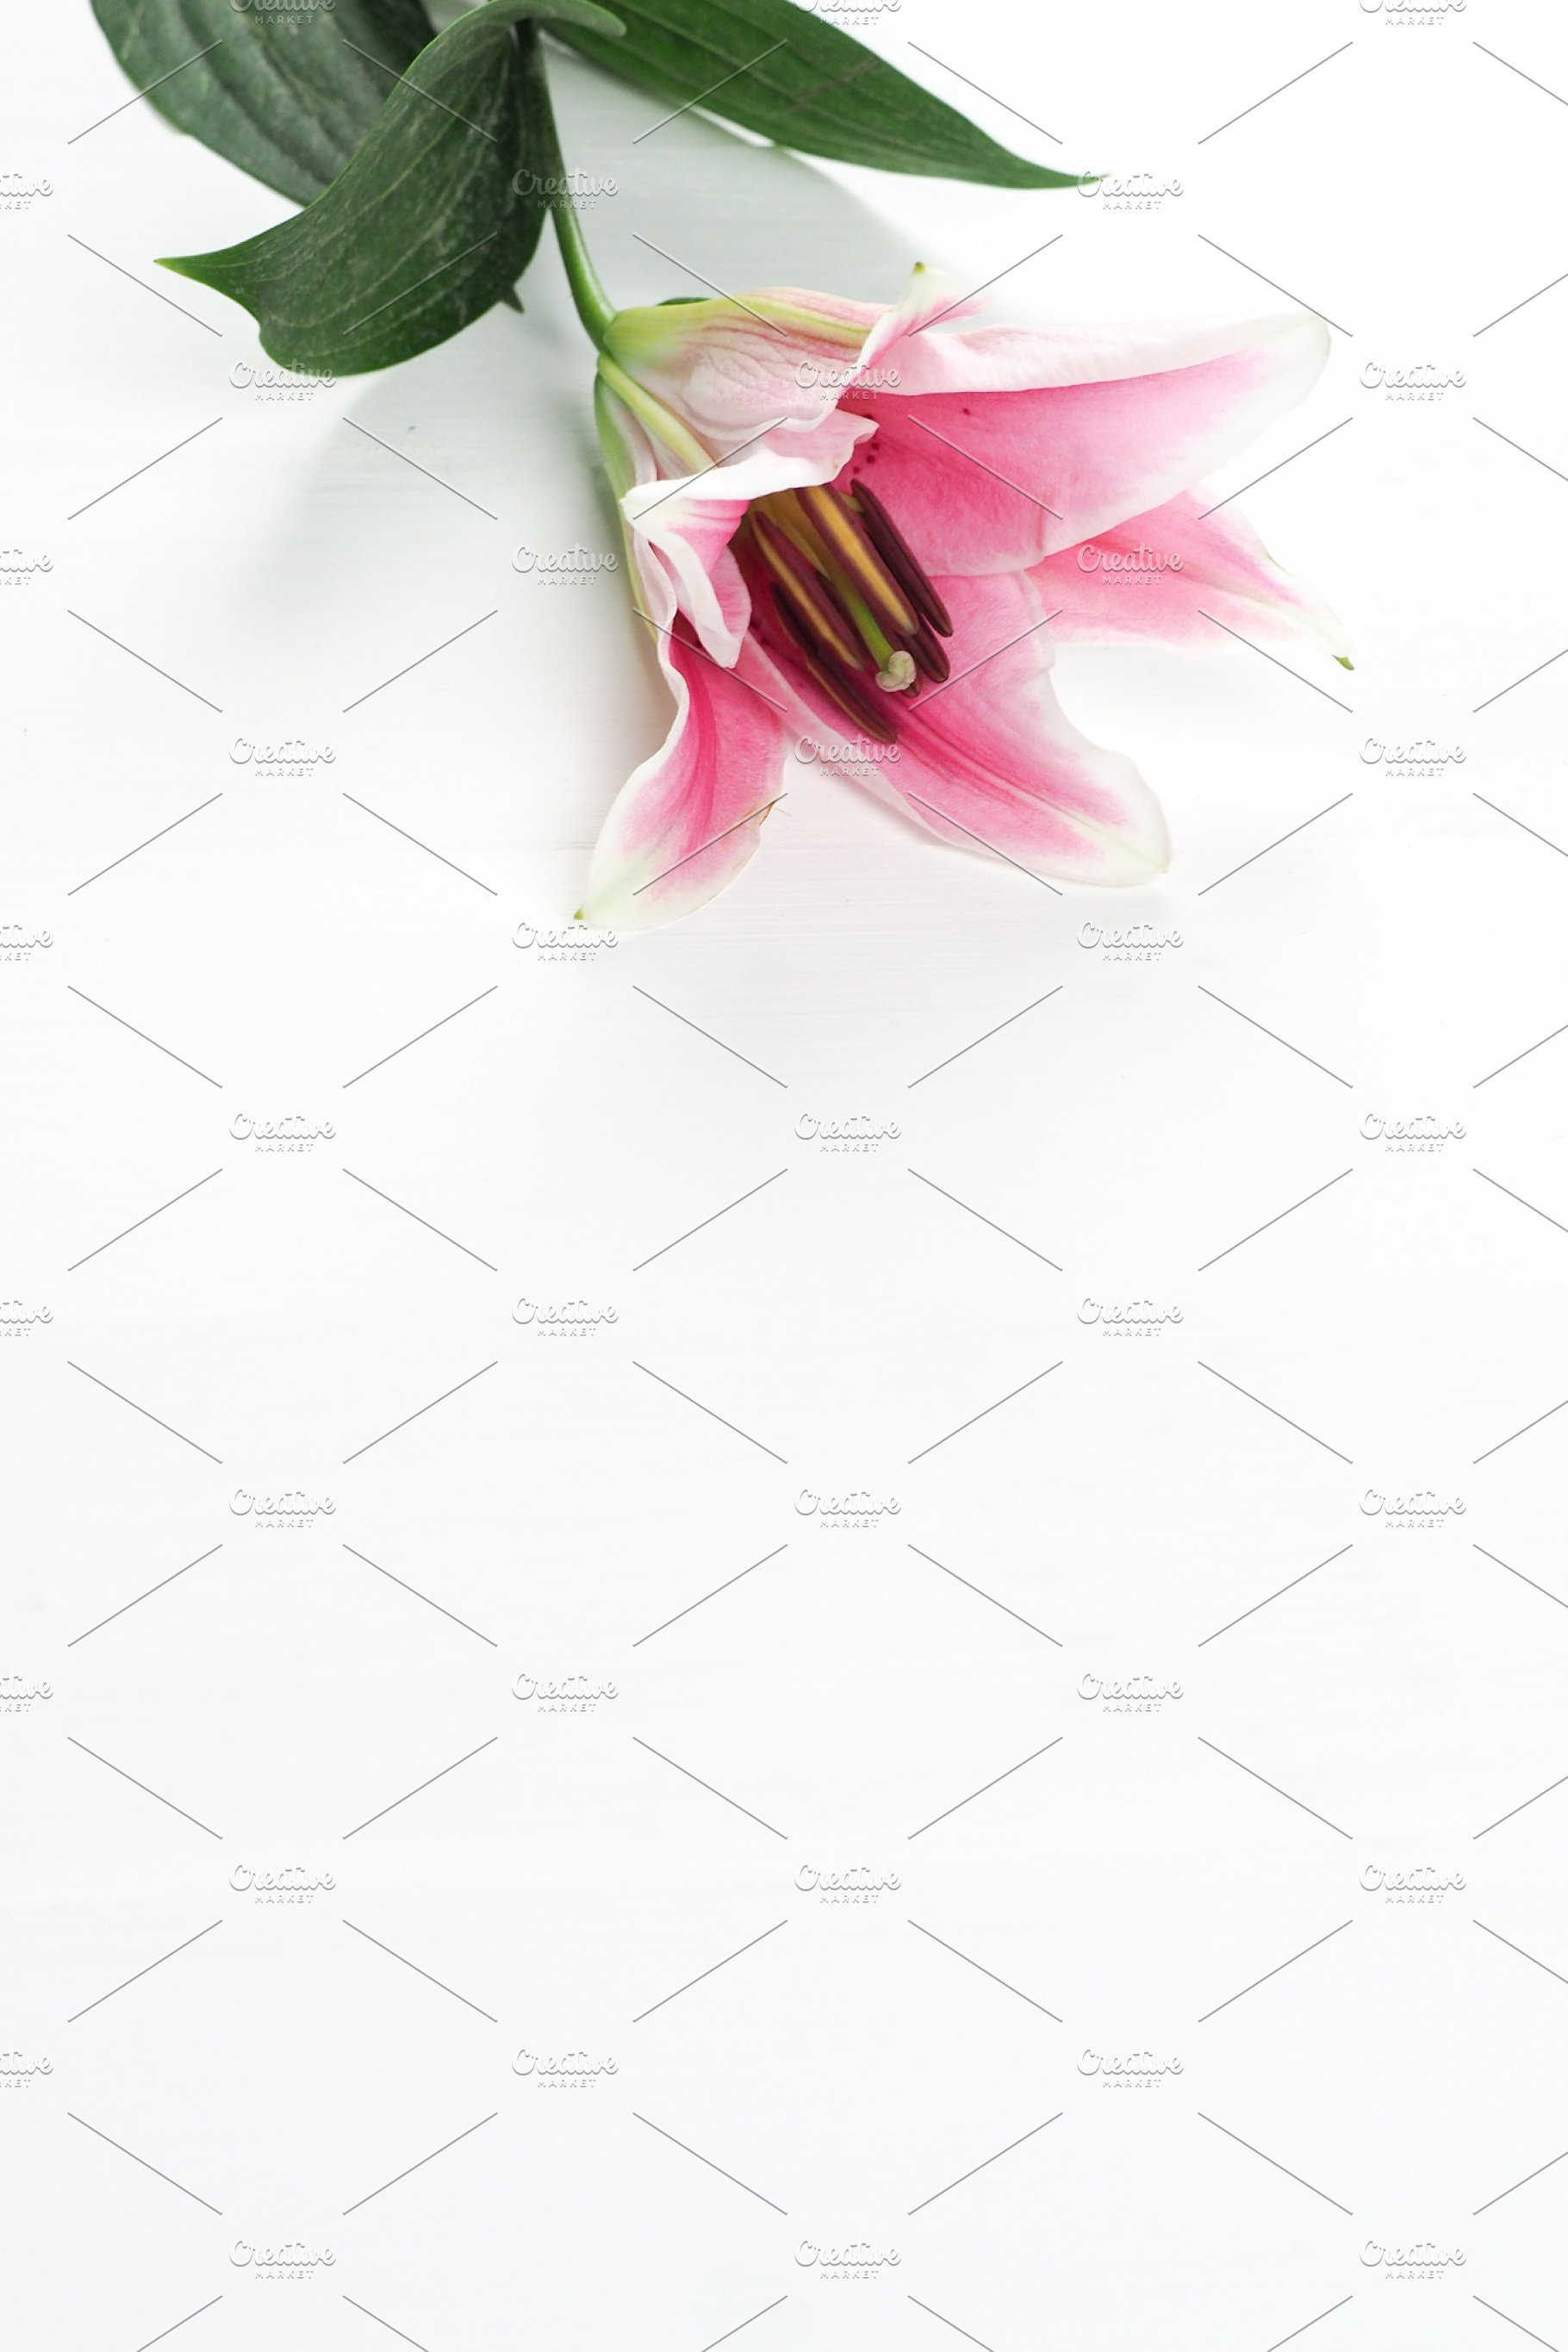 Pink Lily Flower Pedals On White Background Portrait View